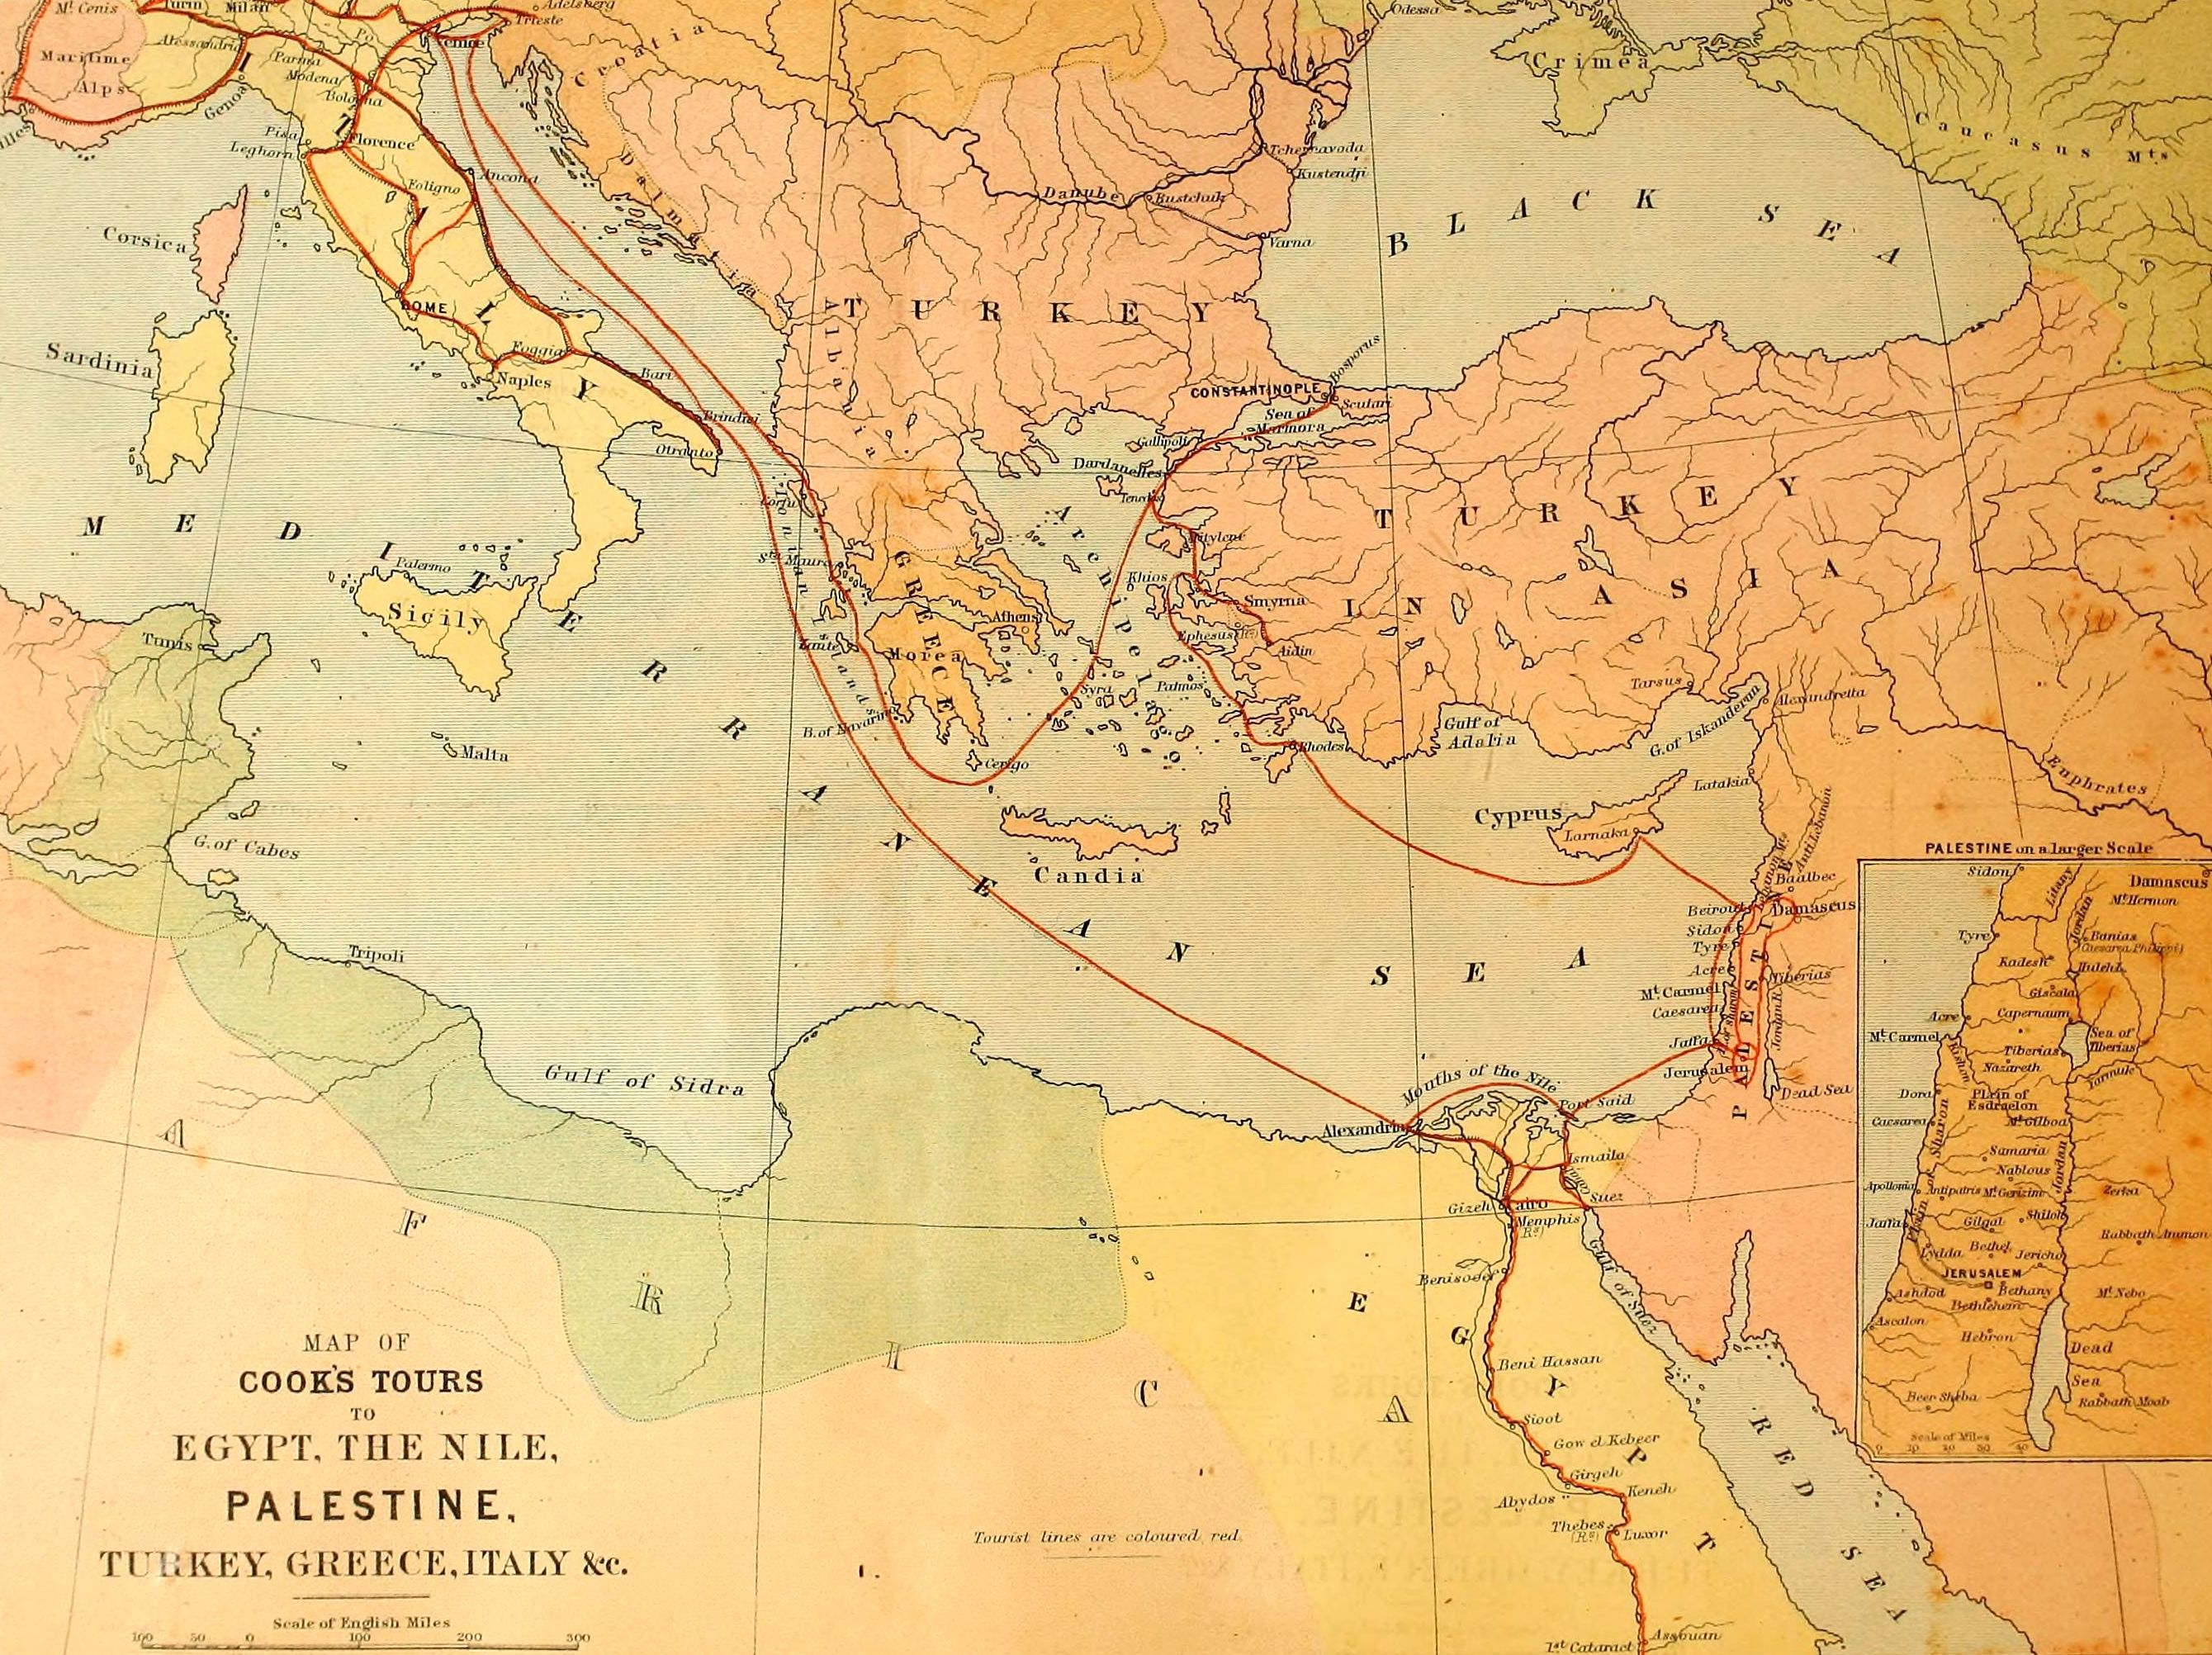 Map up the nile by steam 1872 egypt the nile palestine nile map up the nile by steam 1872 egypt the nile palestine gumiabroncs Images